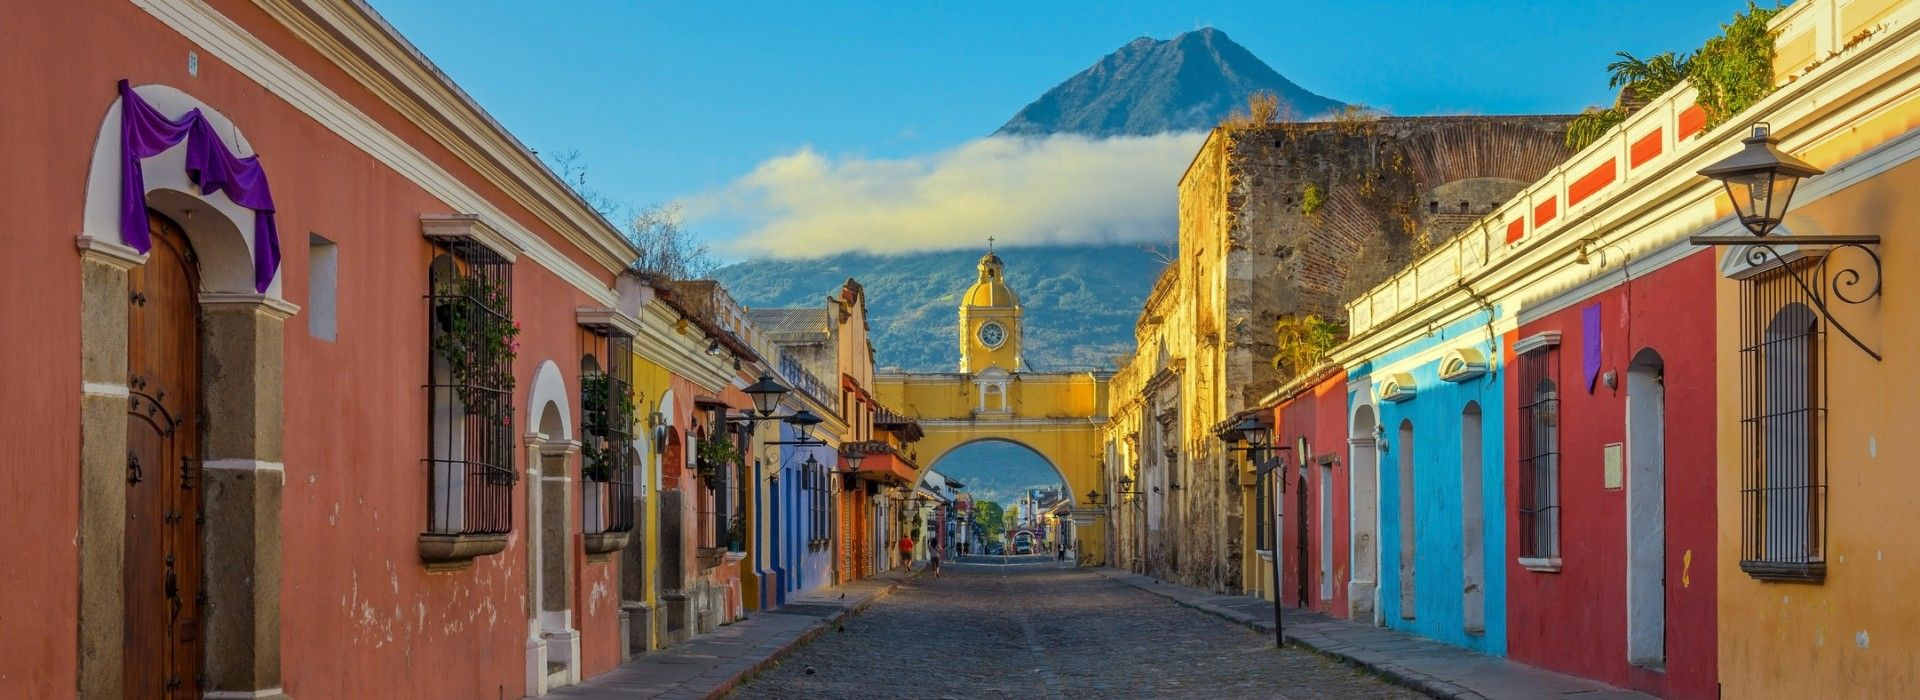 Beach, romance, getaways and relaxation Tours in Central America